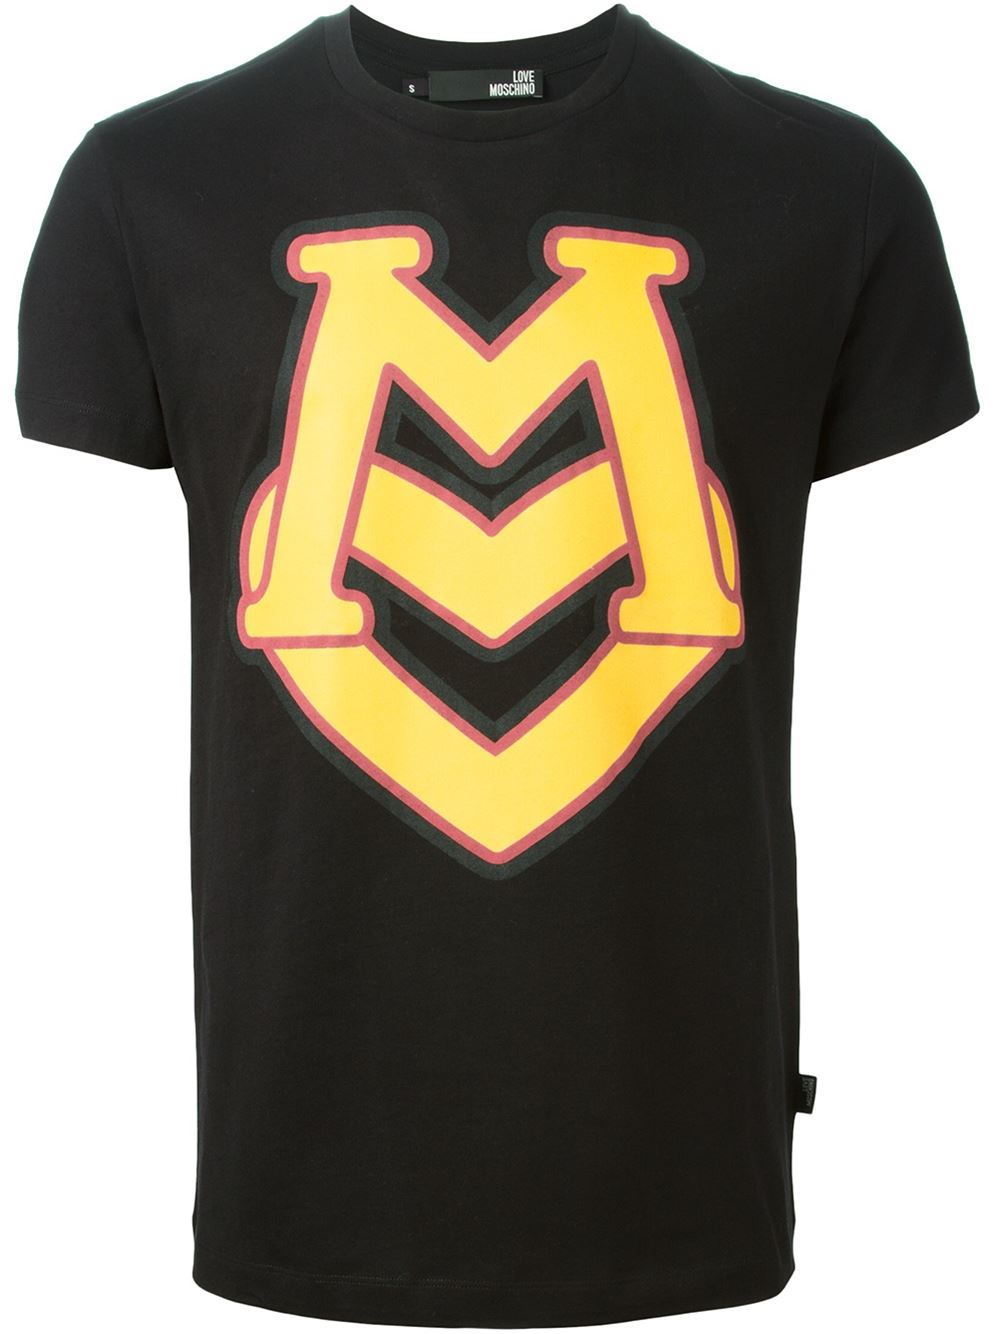 love moschino logo print t shirt in black for men lyst. Black Bedroom Furniture Sets. Home Design Ideas